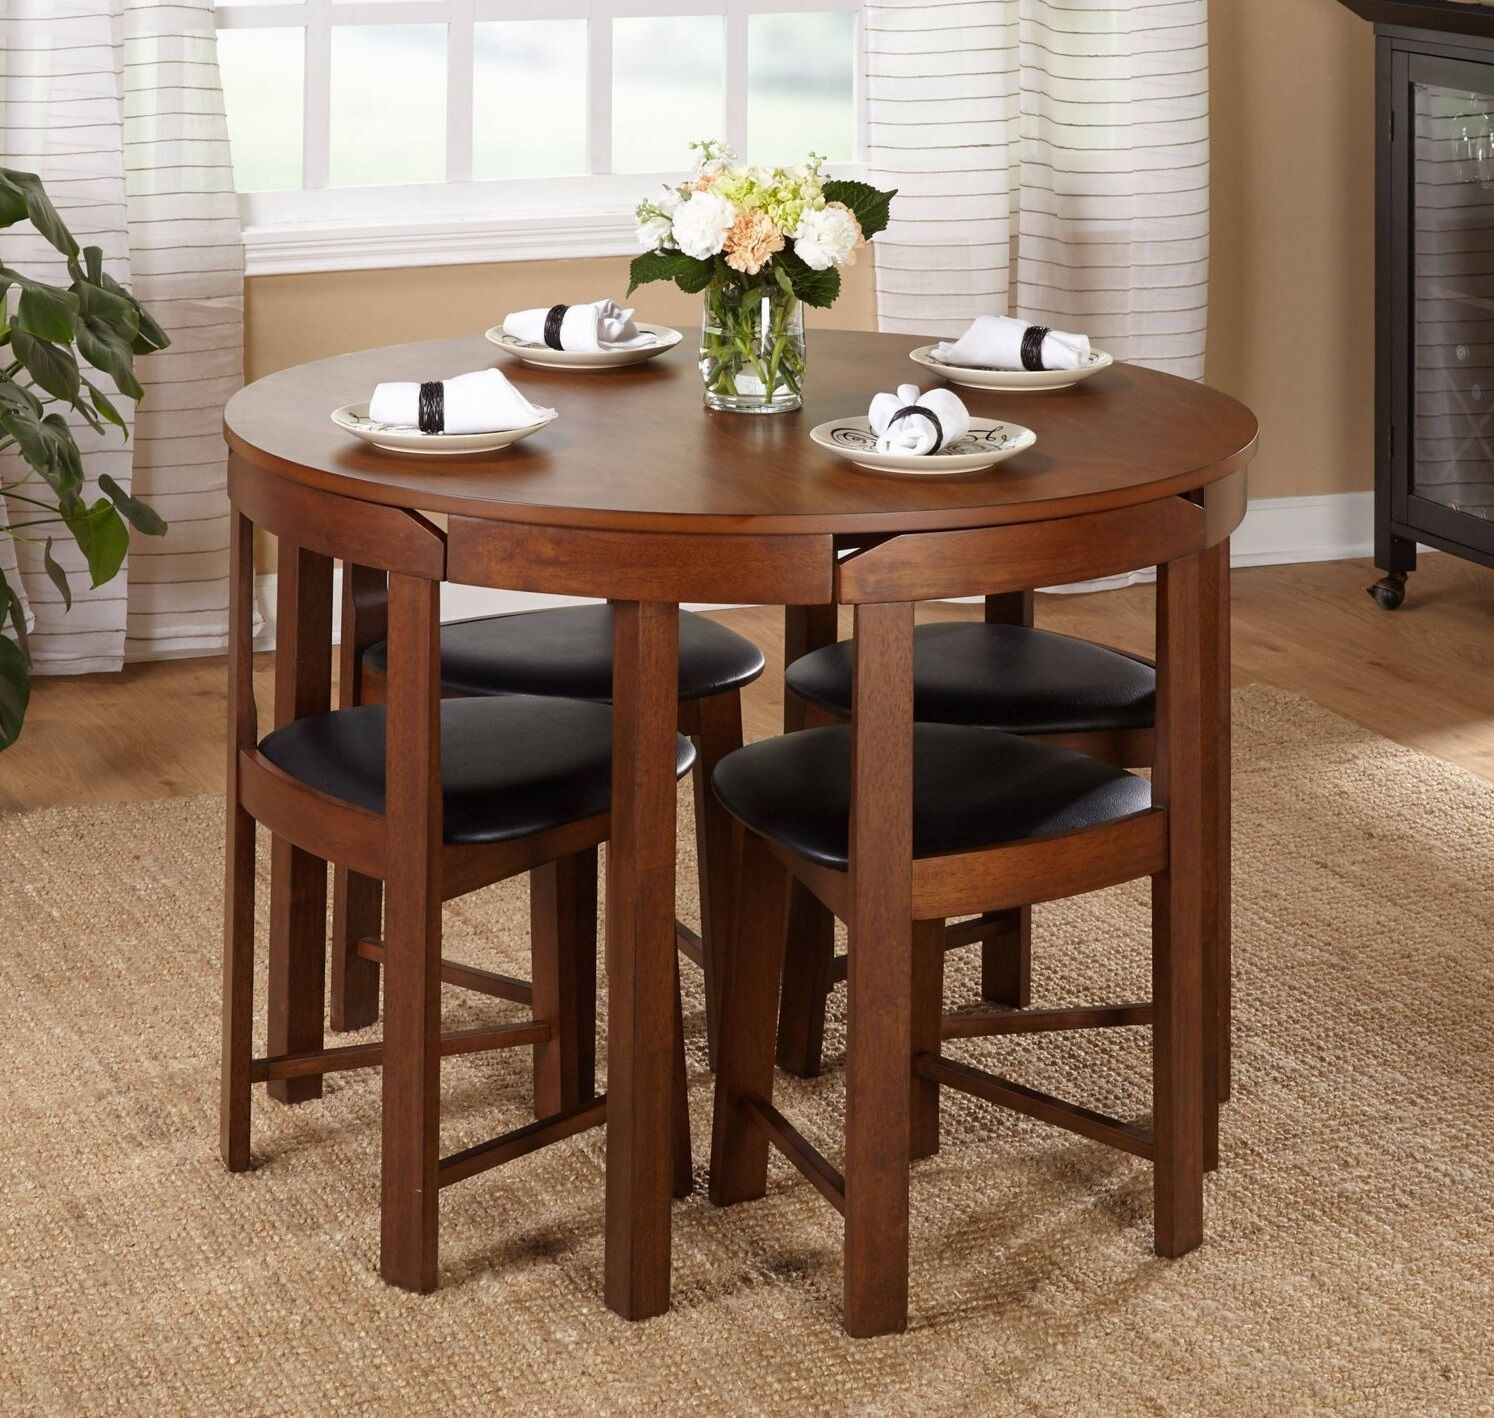 Kitchenette Table And Chair Sets: Modern 5pc Dining Table Set Kitchen Dinette Chairs